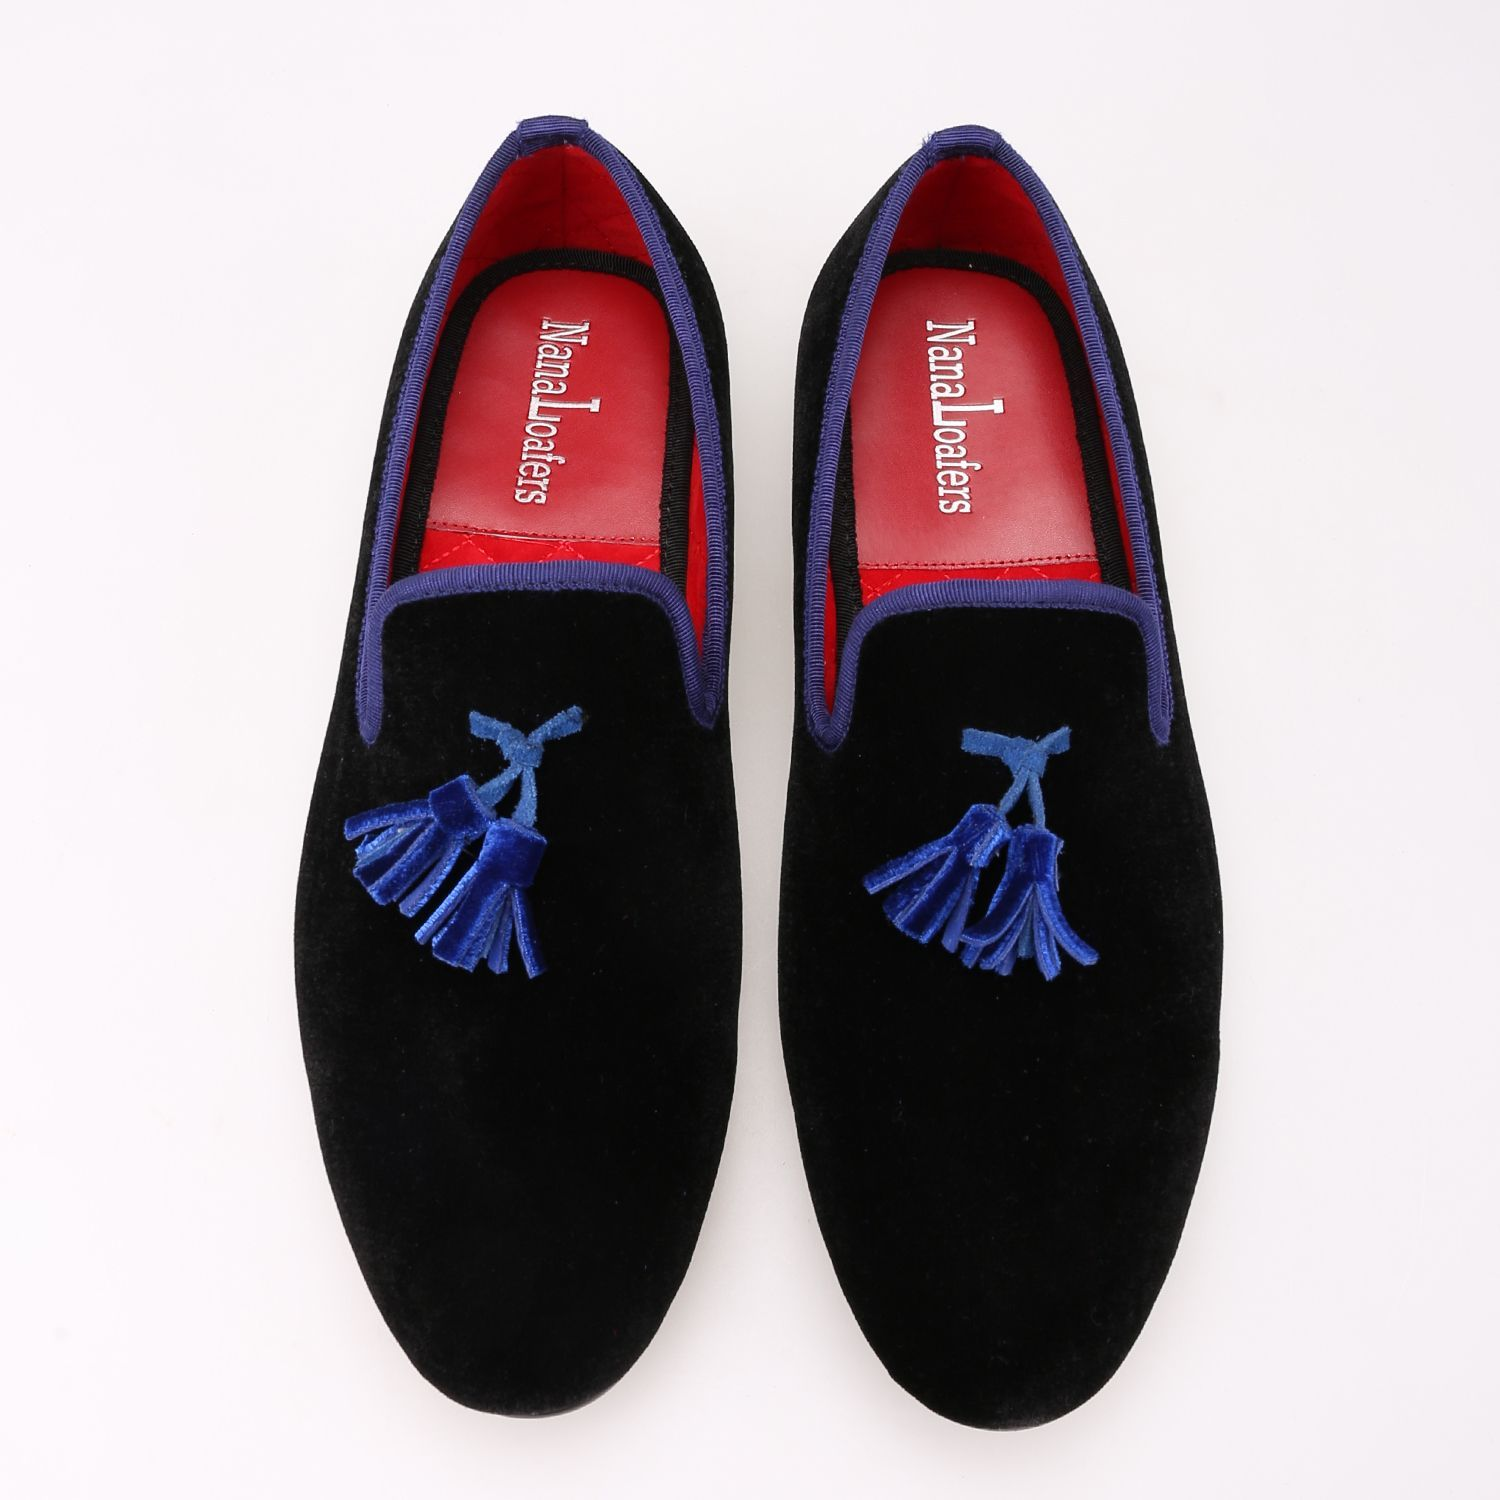 490c54f1f19 Men Royal Blue Black Velvet Loafers in 2019